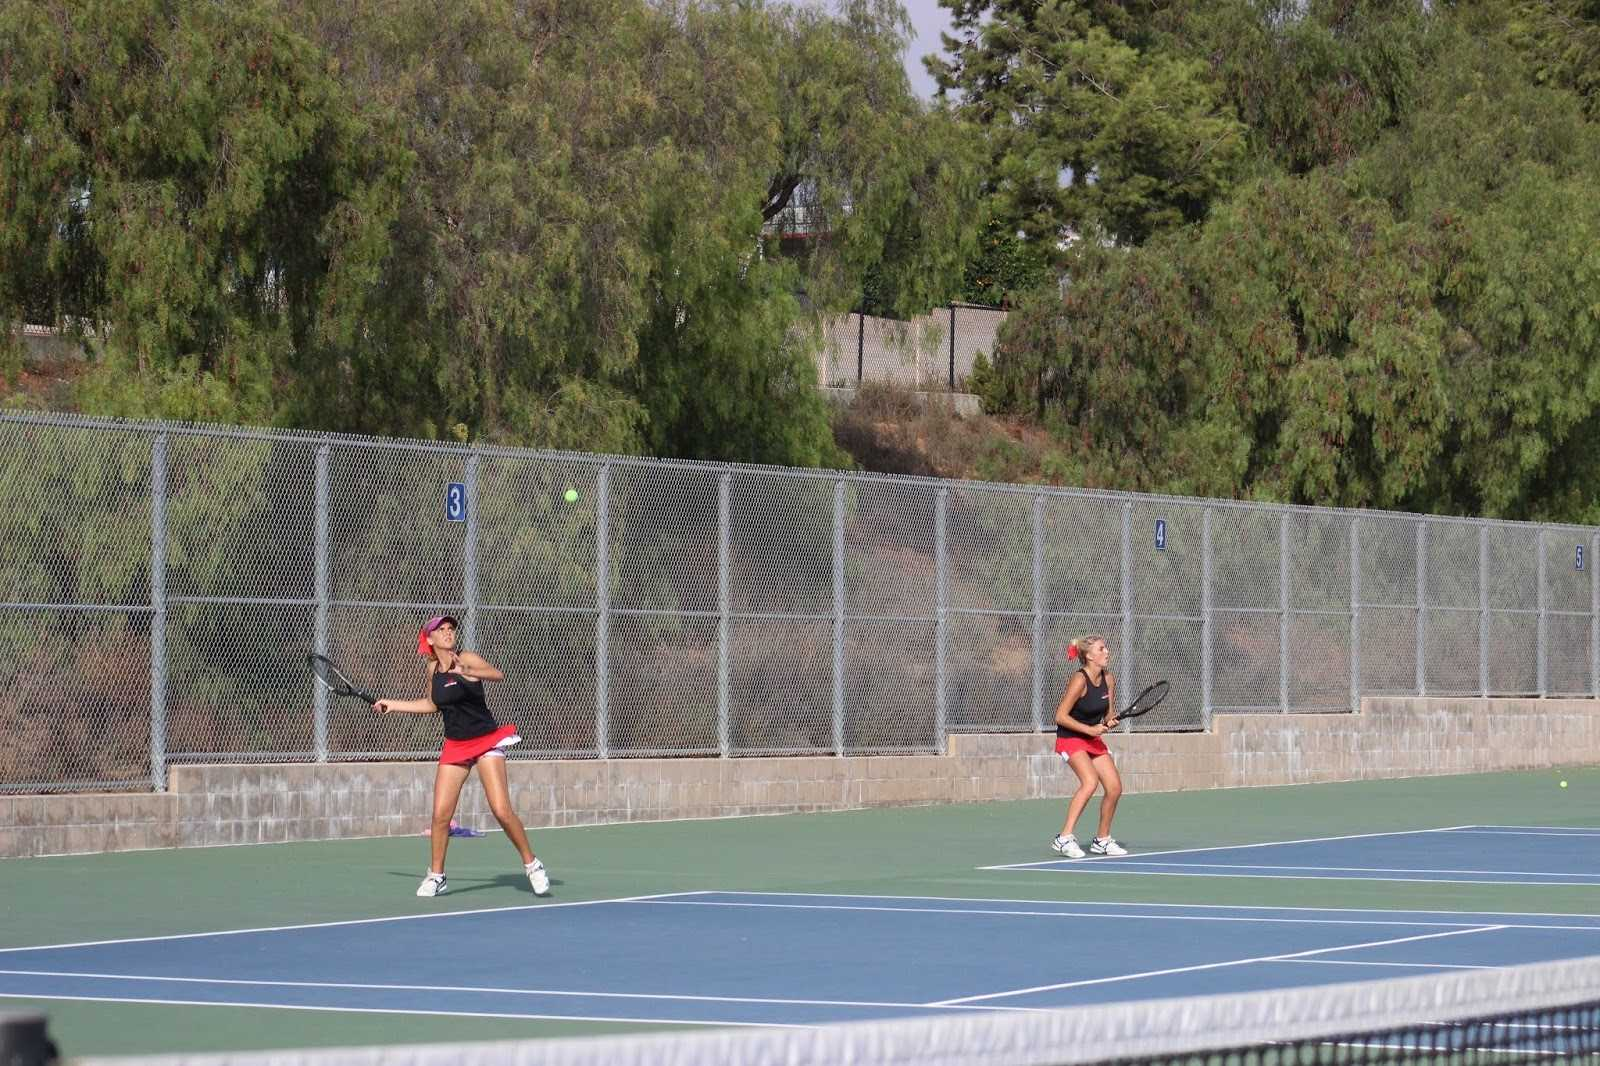 <em><strong>A Sibling Match.</strong></em> Sisters Lexie and Taylee Mann-Shomo play intense matches on courts next to one another. Photo taken by Lauryn Butler.